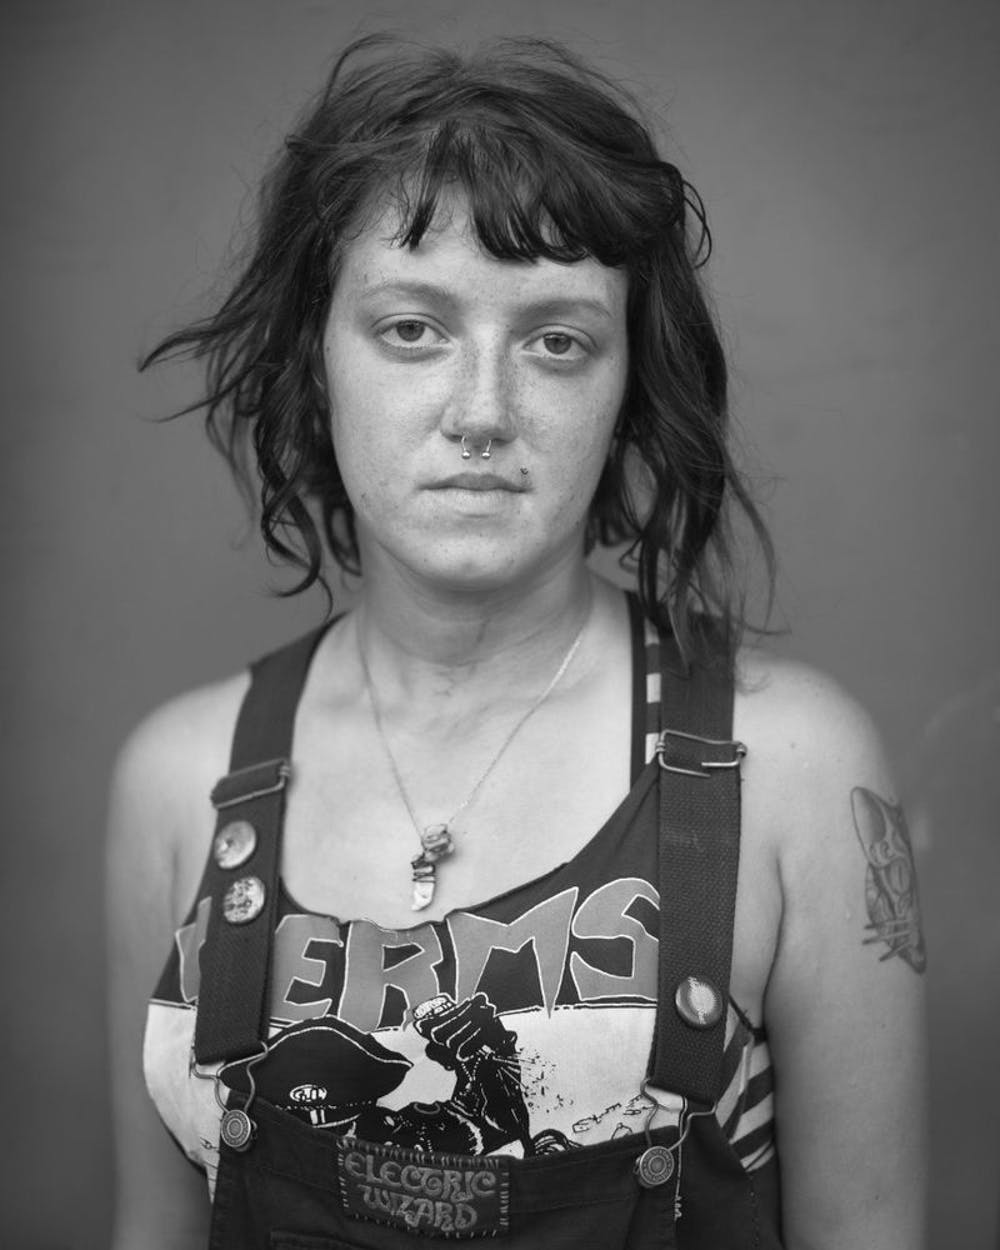 Ireen New Orleans LA 2014 © Michael Joseph 1 People Are Being Arrested For Driving High, Even Though Theyve Never Smoked Weed